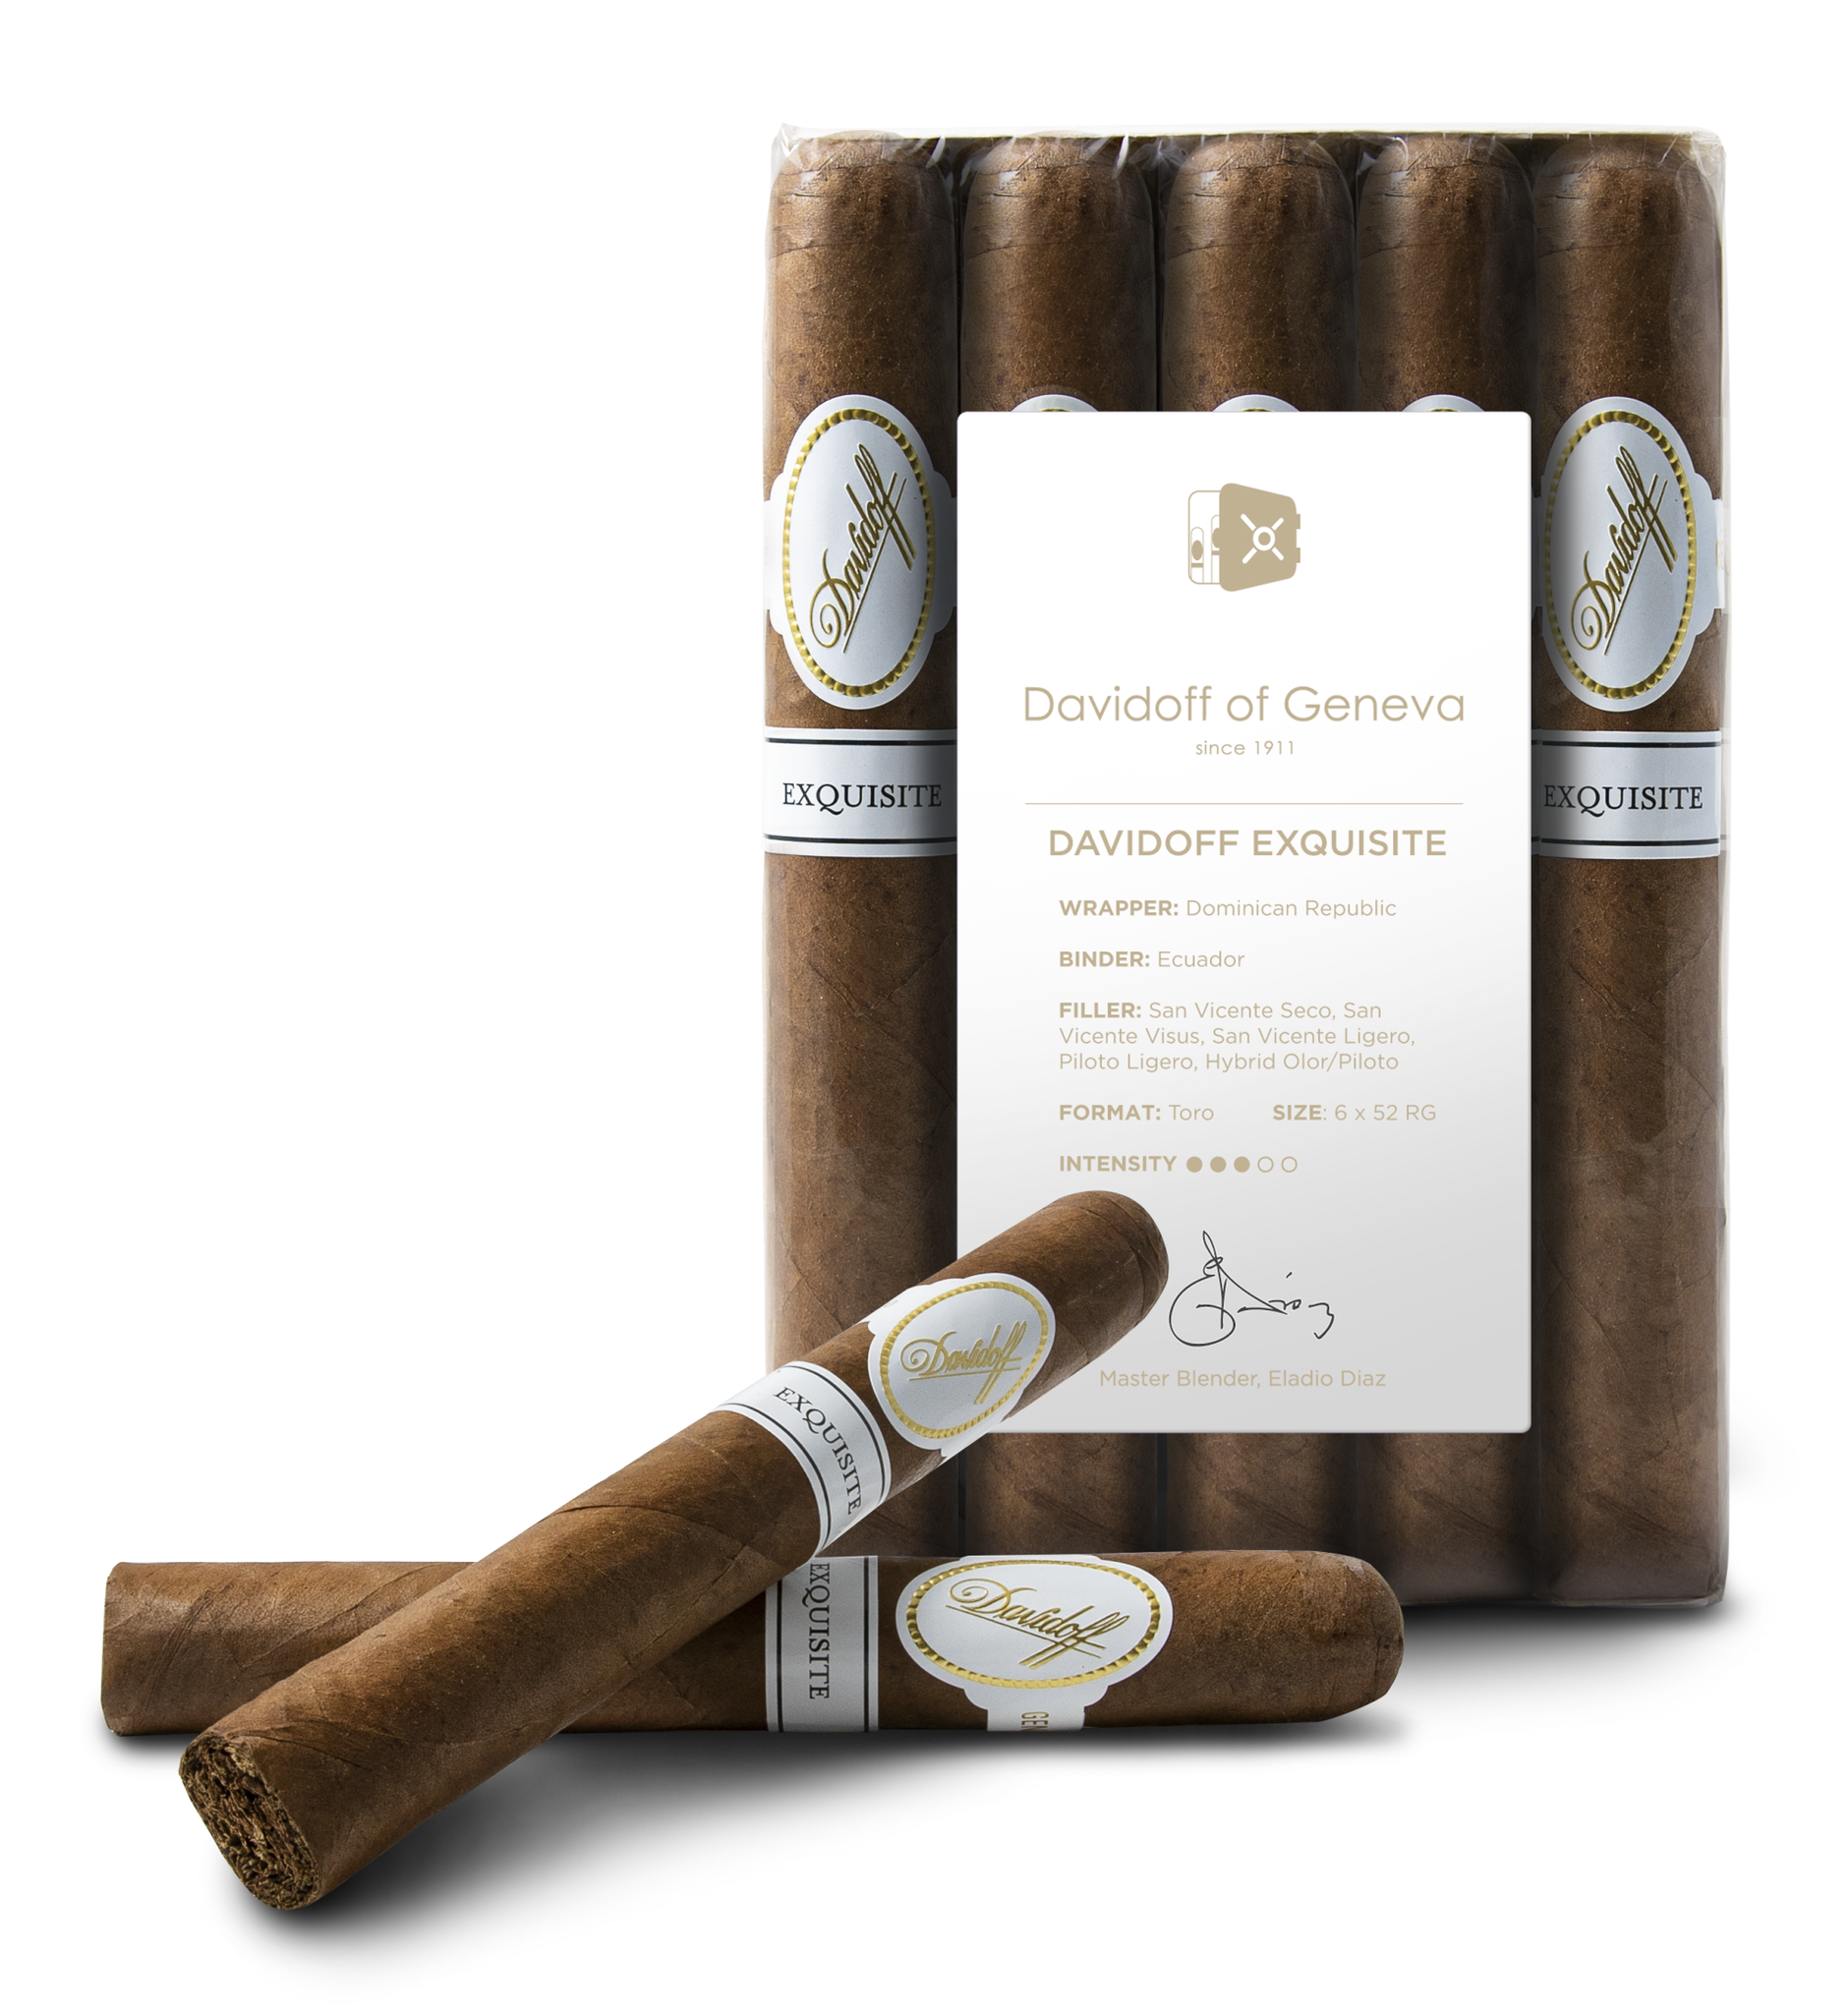 Introducing the Newest Davidoff Vault Release the Exquisite Toro